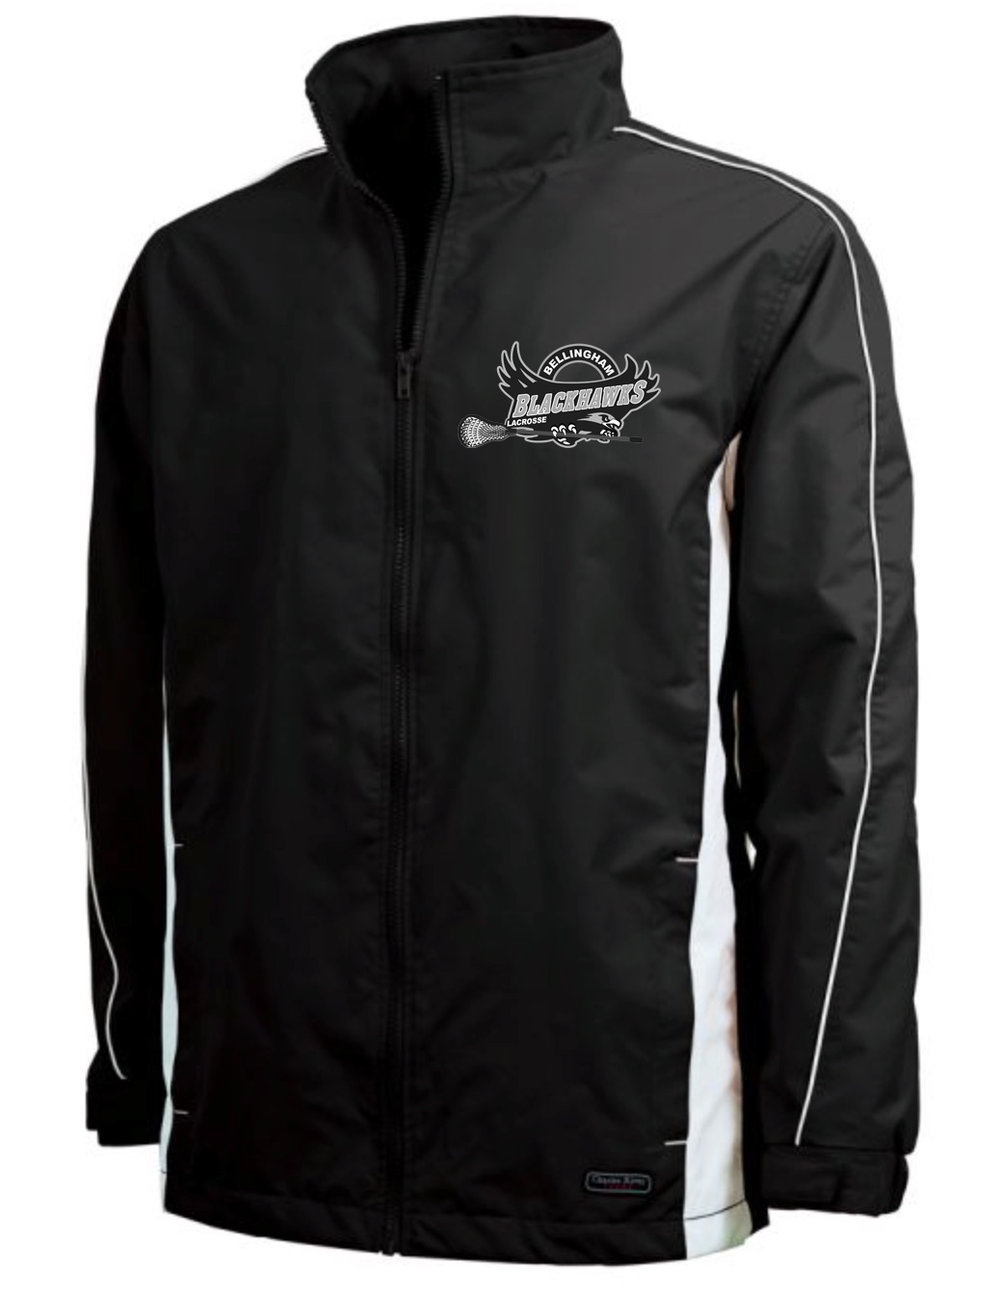 Bellingham Lacrosse Pivot Jacket - From $65